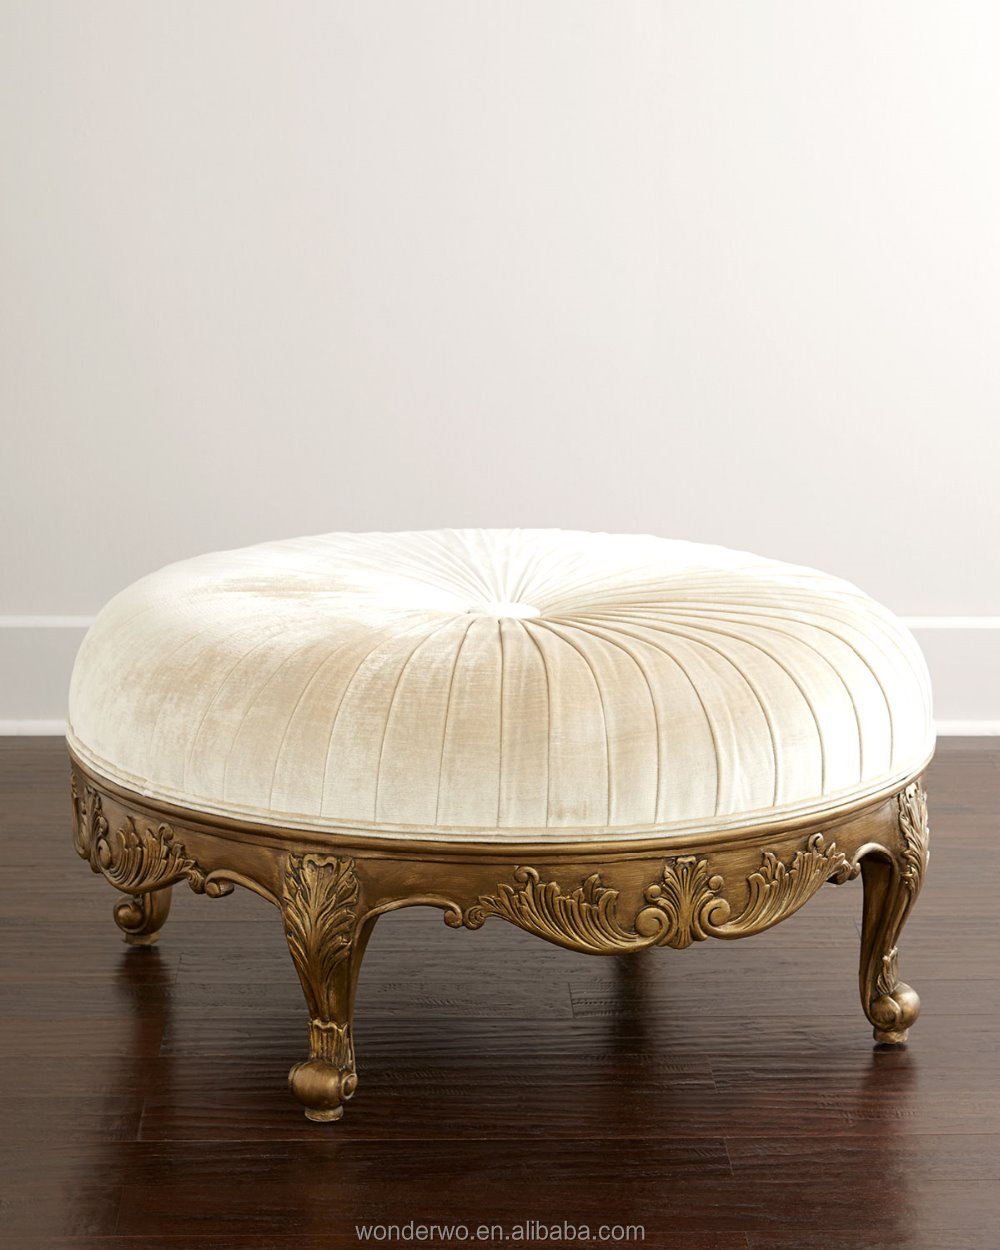 Surprising Royal Antique Round Ottoman Carved Furniture Bedroom Furniture Buy Antique Round Ottoman Bedroom Furniture Pouf Product On Alibaba Com Beatyapartments Chair Design Images Beatyapartmentscom